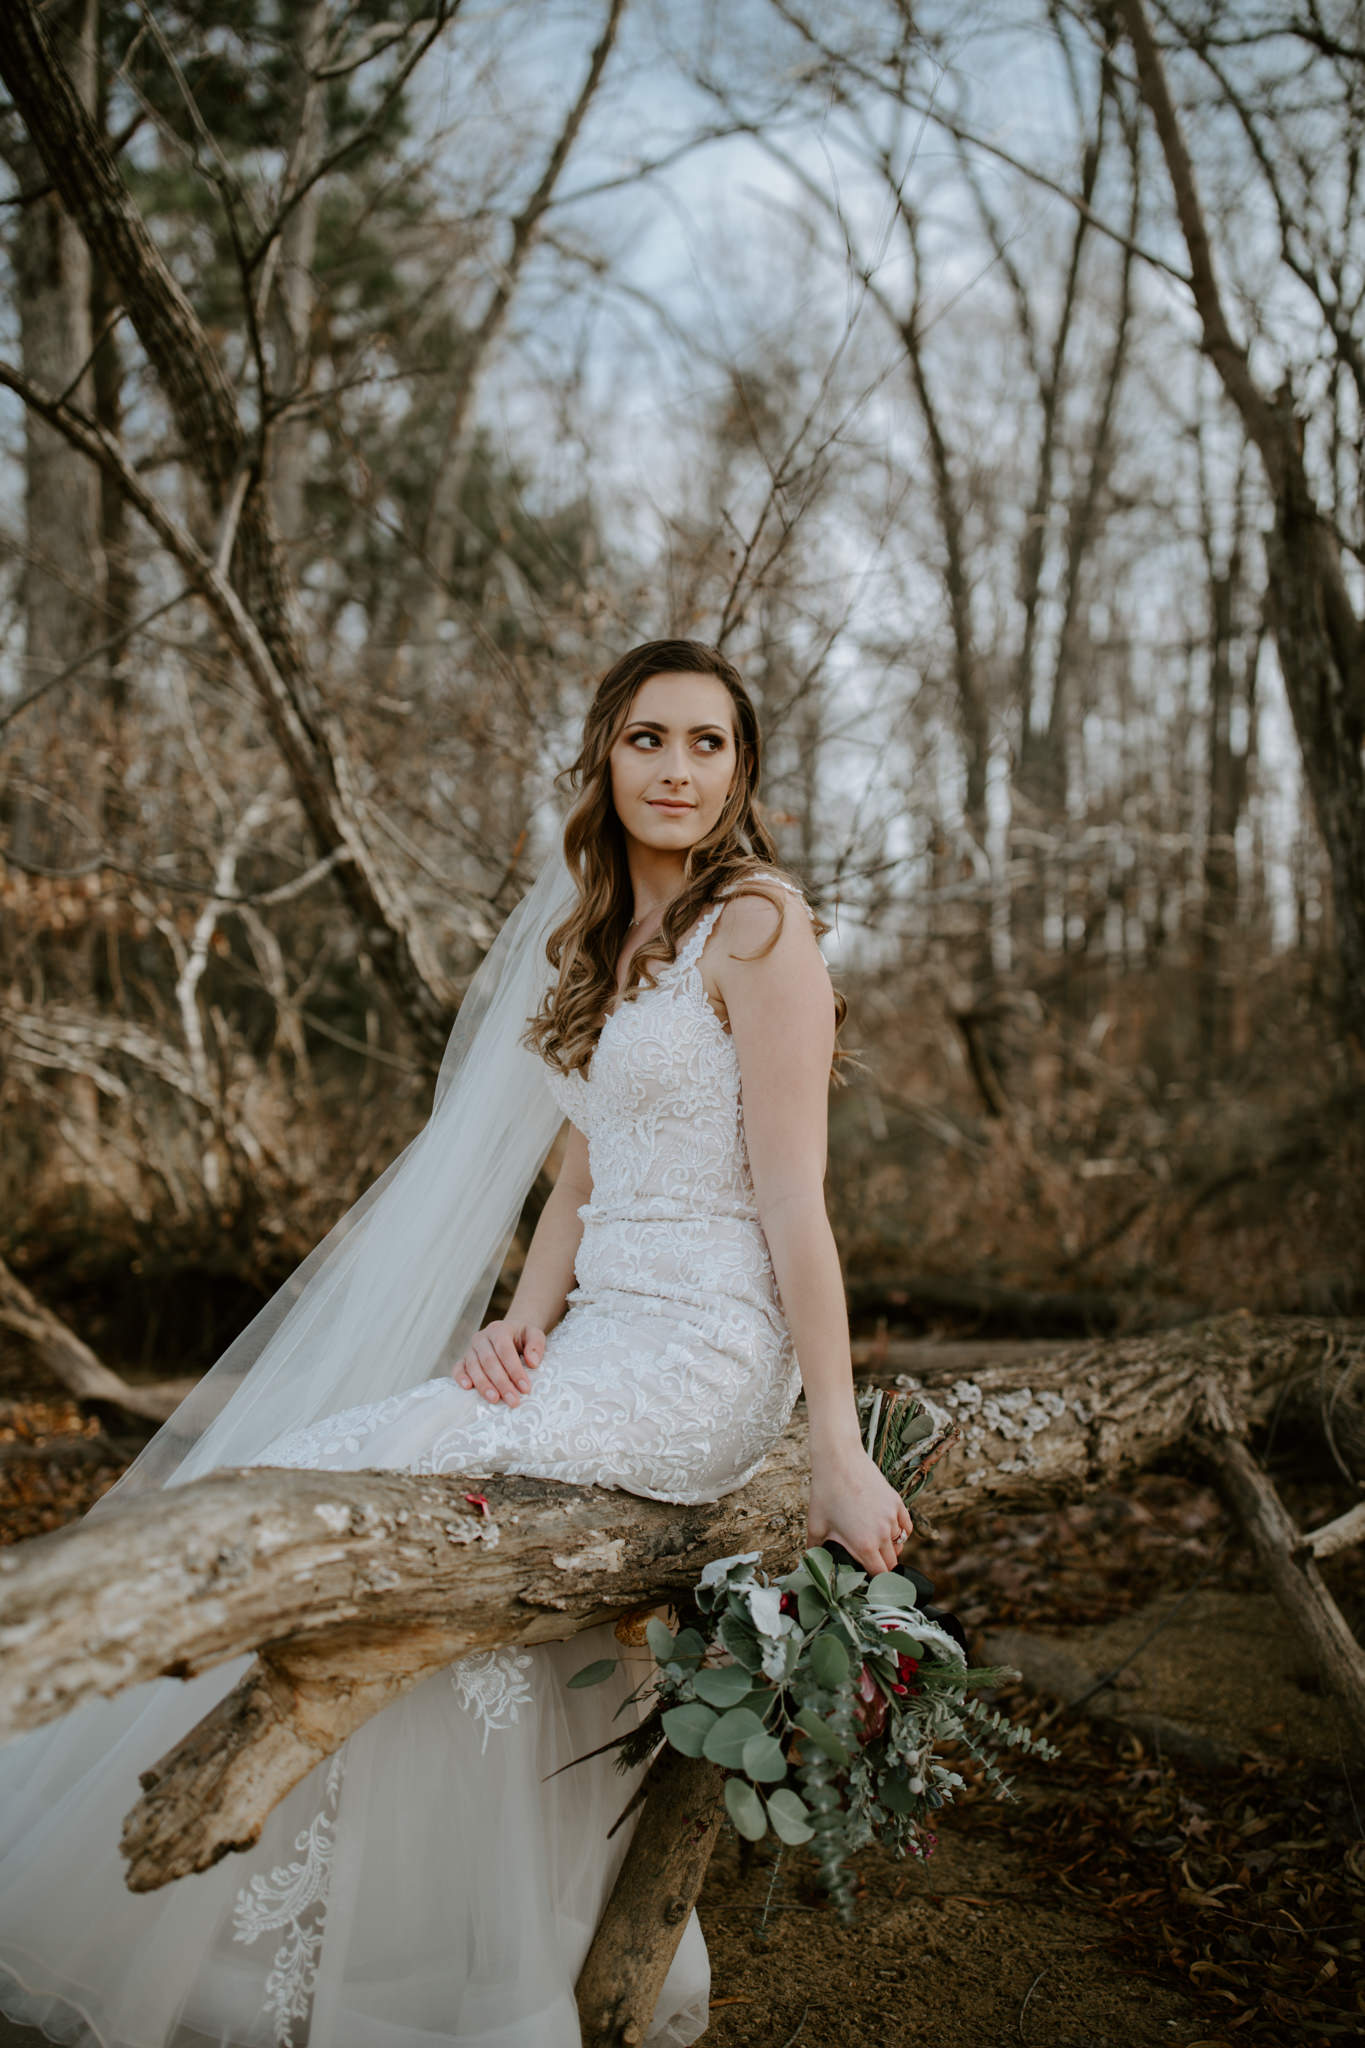 Katie-Bridal-Chattanooga-Nashville-Wedding-Elopement-Photographer-83.jpg